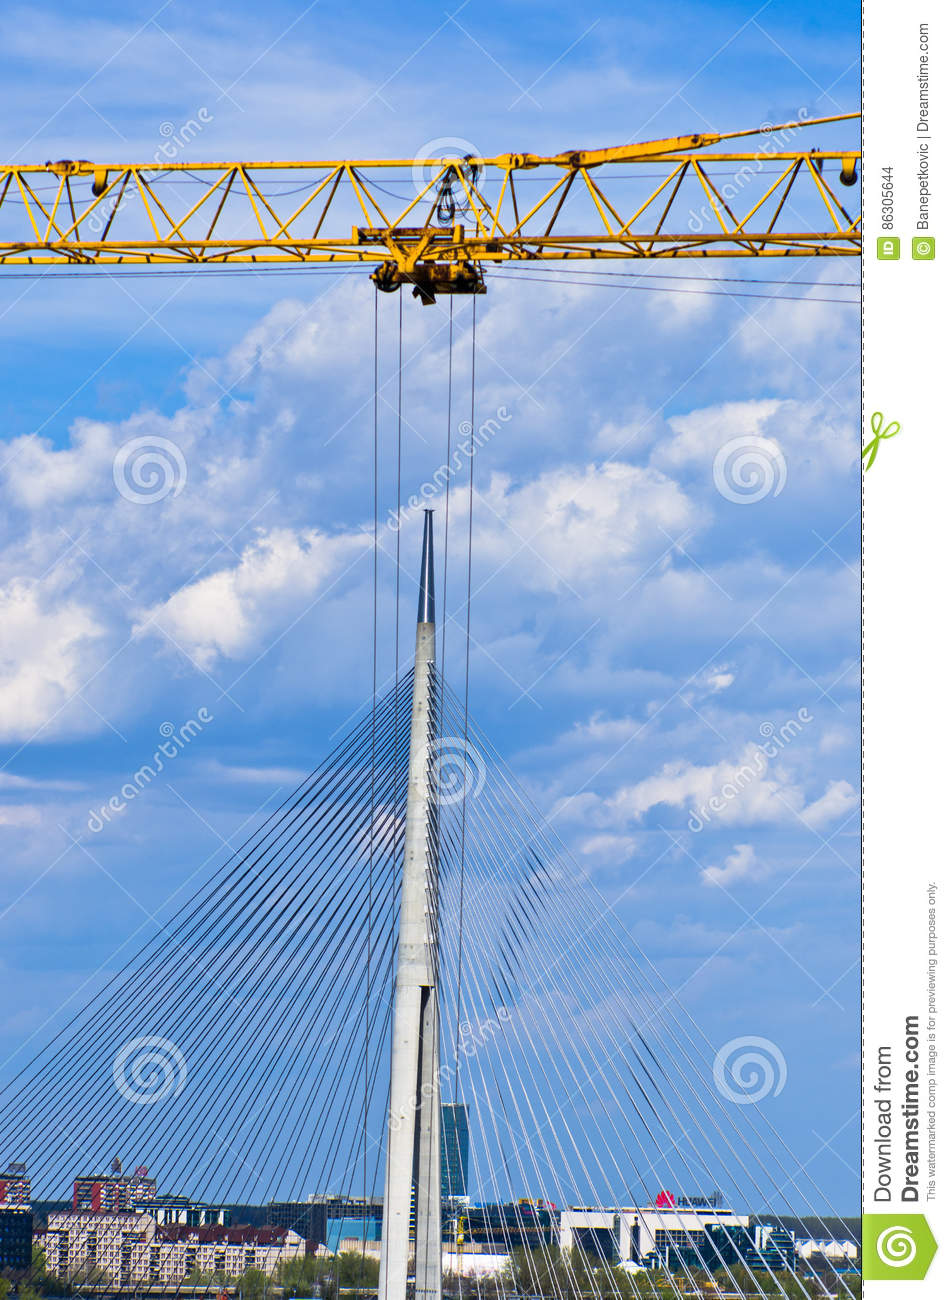 Looks like that big crane is removing cable bridge to another location in Belgrade